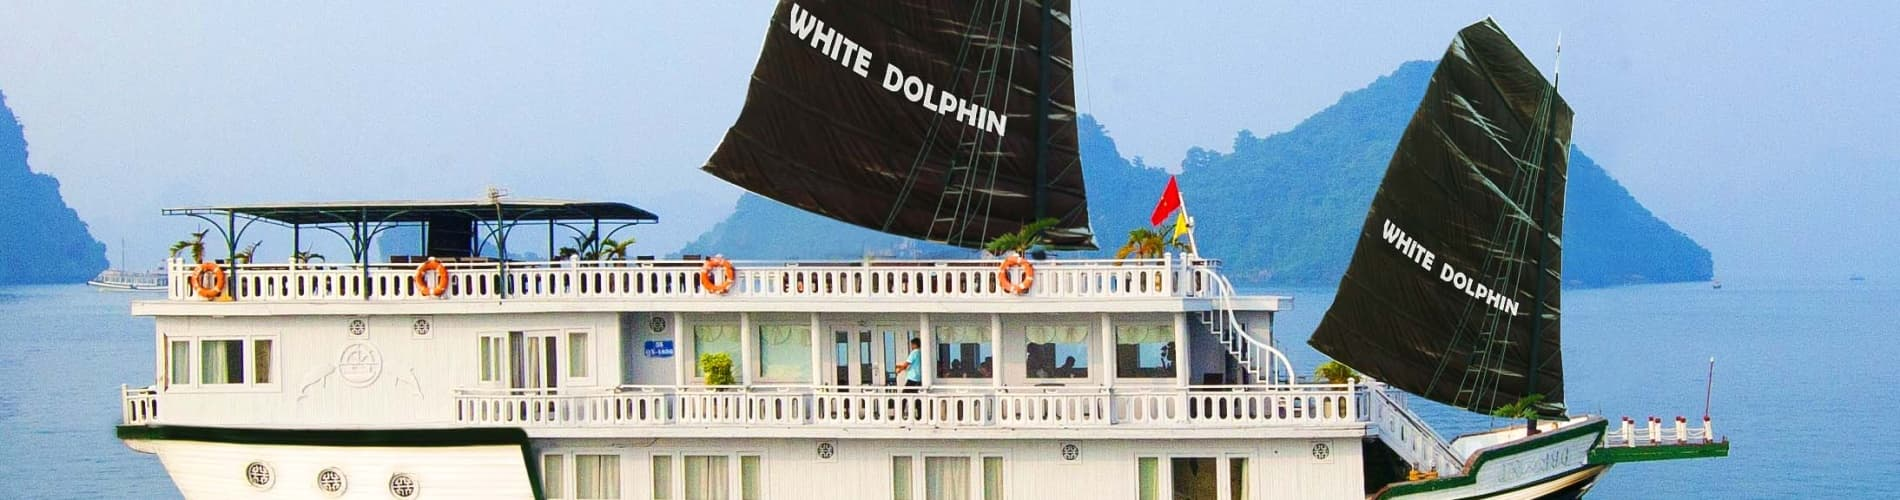 White Dolphin Cruises